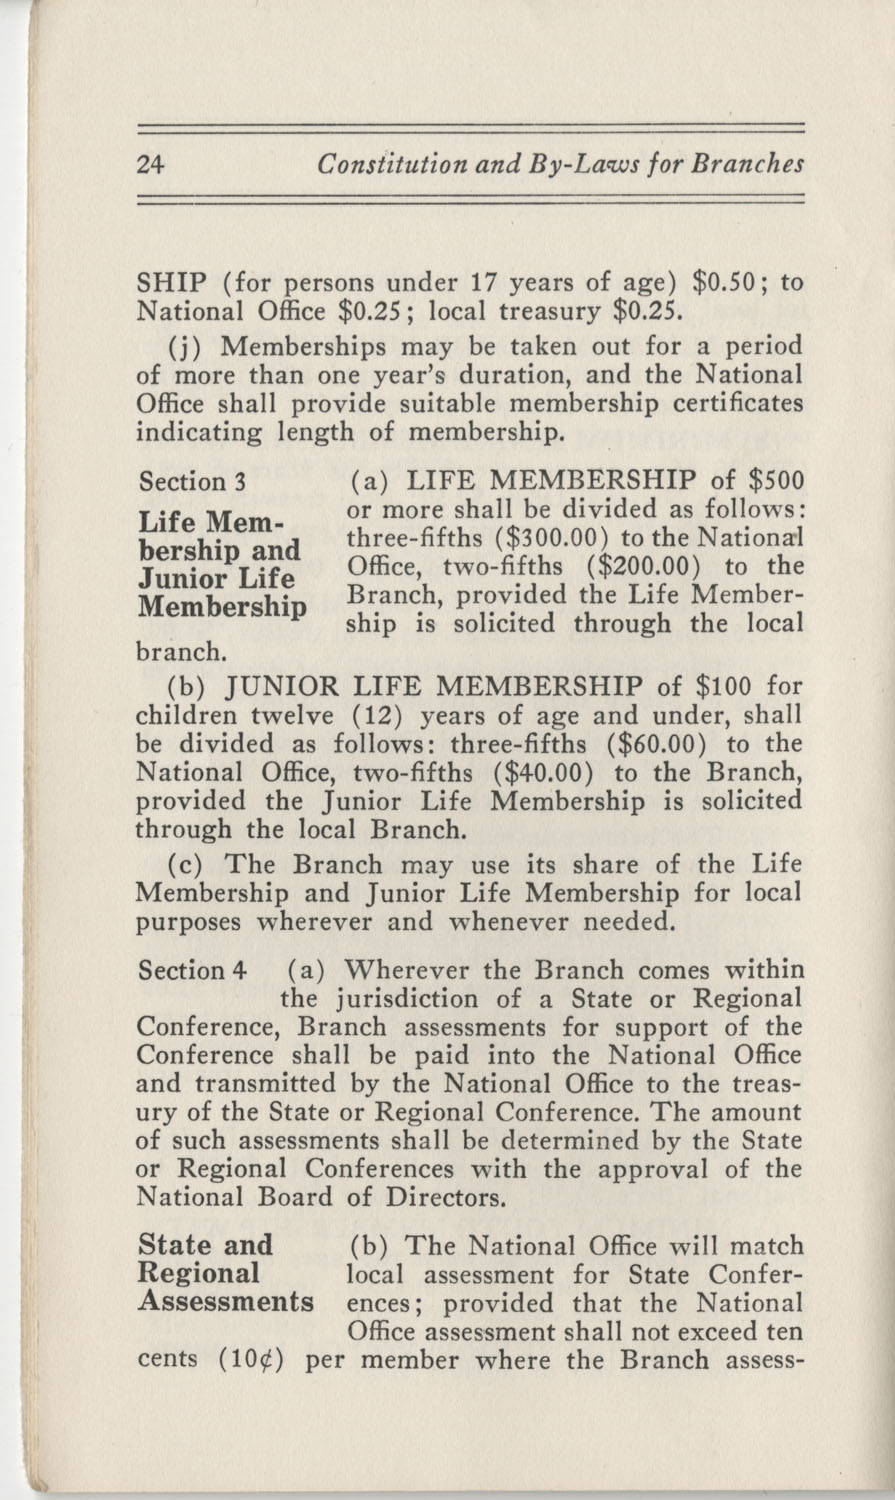 Constitutions and By-Laws, September 1960, Page 24